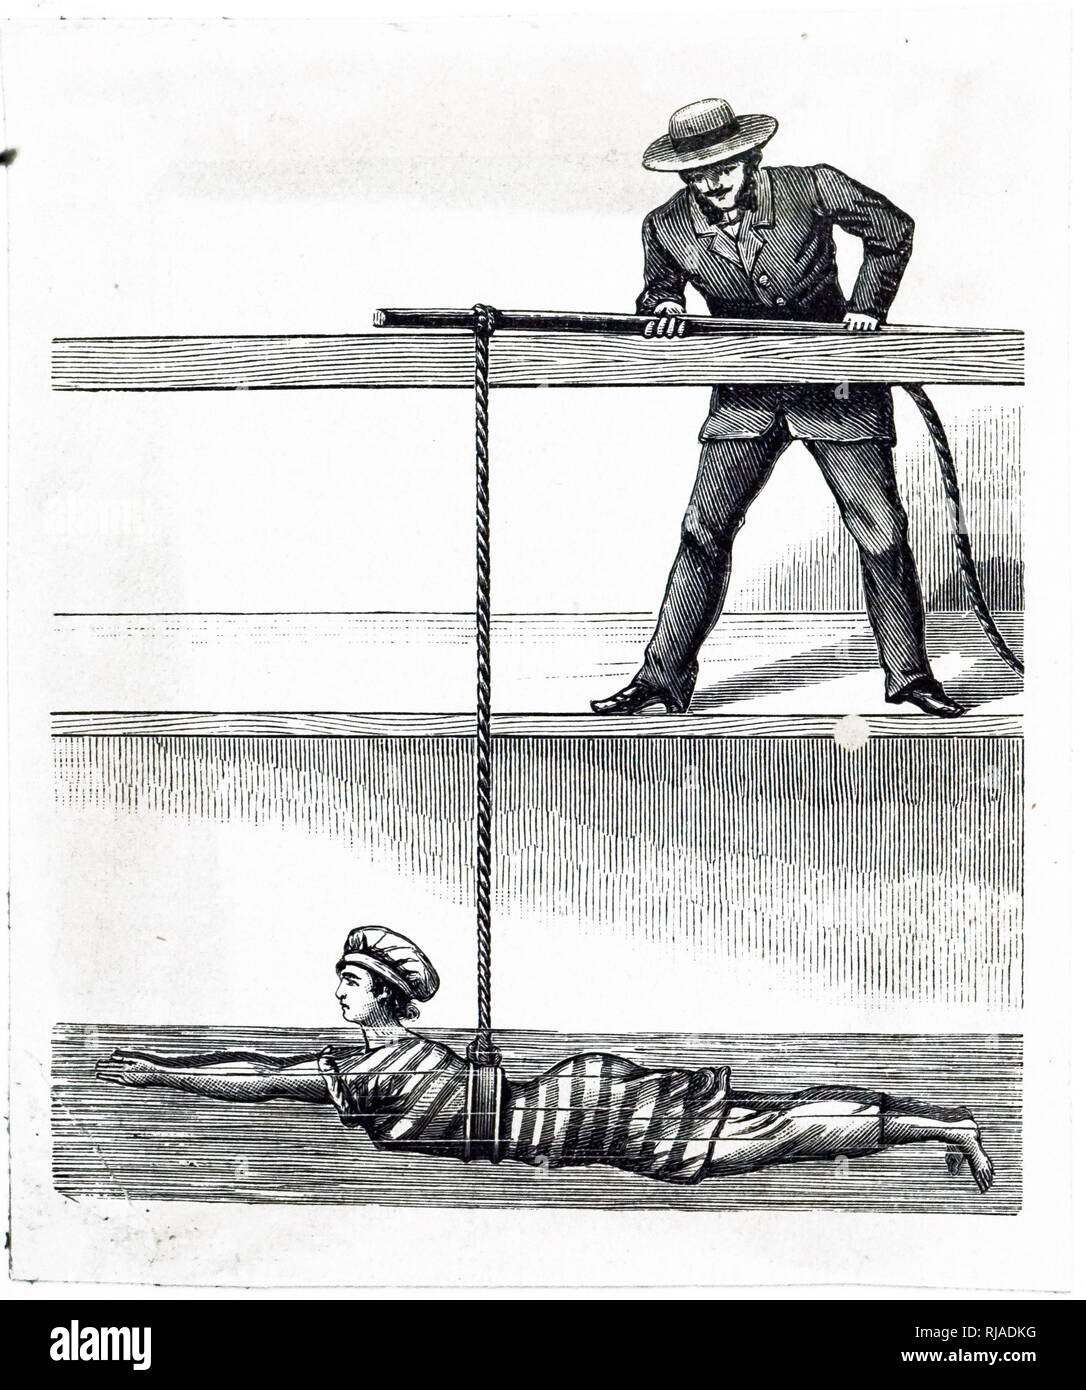 An engraving depicting a man teaching a woman how to swim. He has tied one end of a rope around her waist and the other around a pole which he holds up to keep the swimmer afloat. Dated 19th century Stock Photo